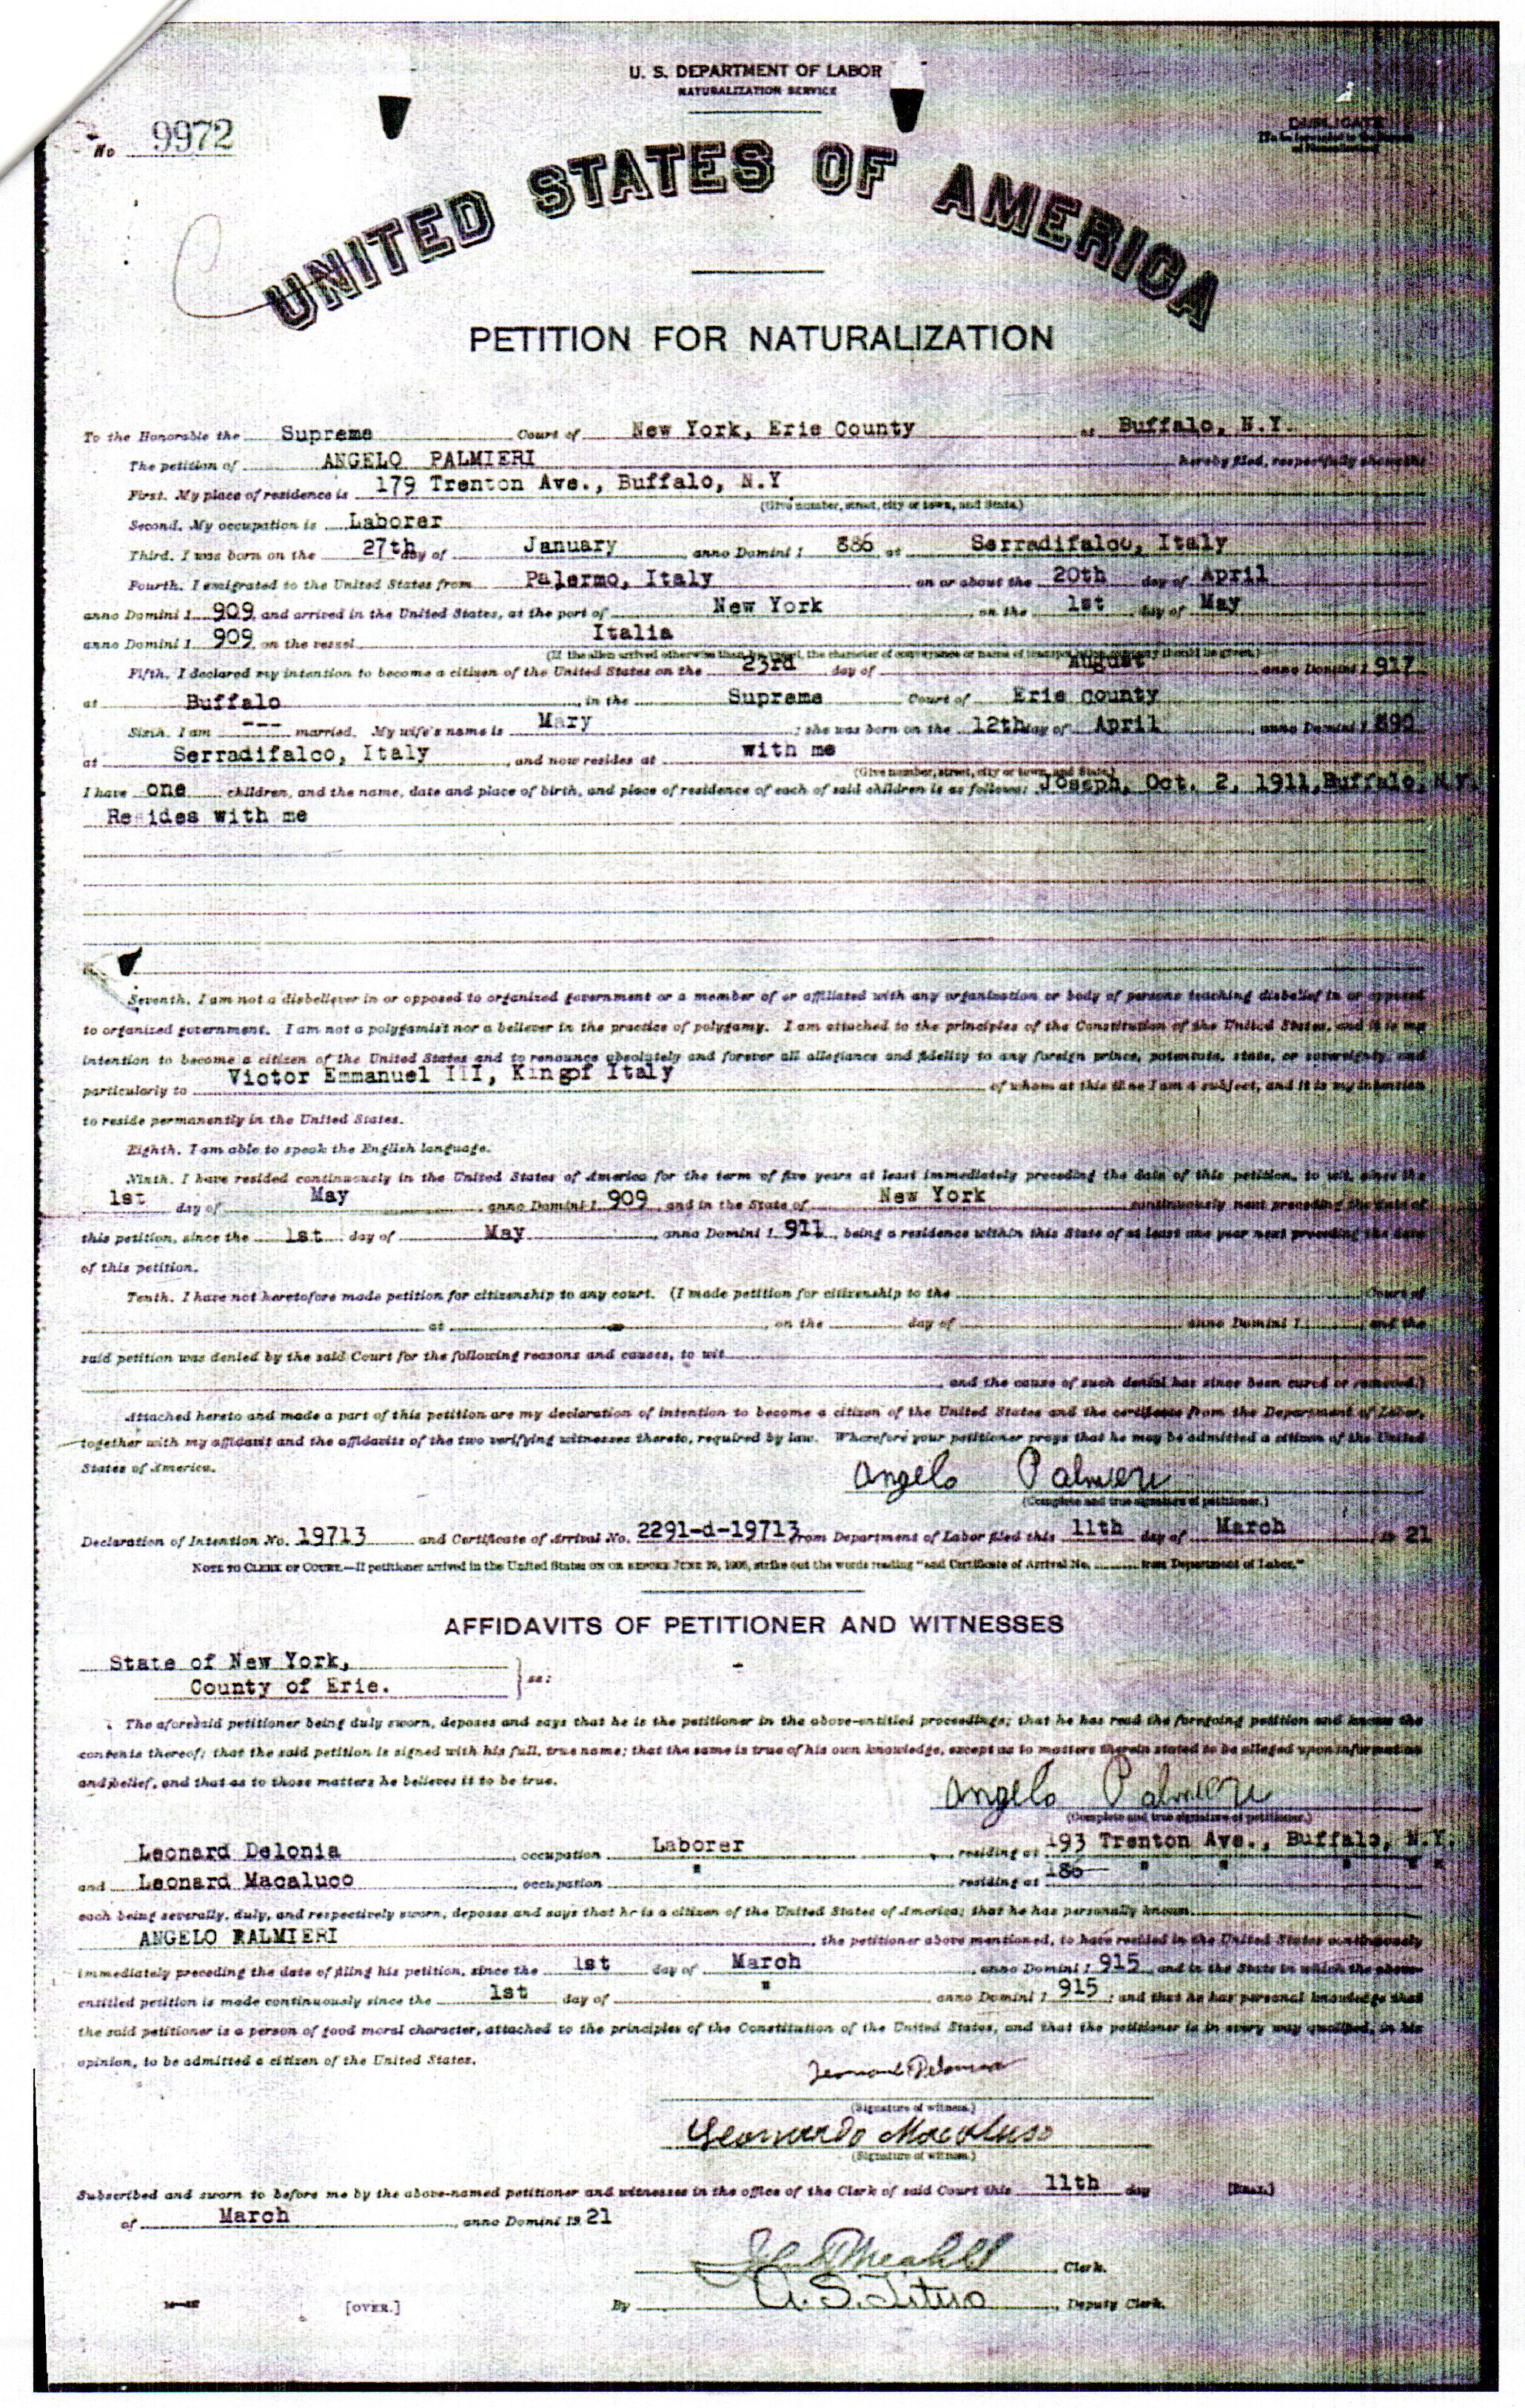 Palmeri page 4 genealogy and jure sanguinis thats 10 years after my grandfather was born in the united states were eligible to declare italian citizenship aiddatafo Gallery